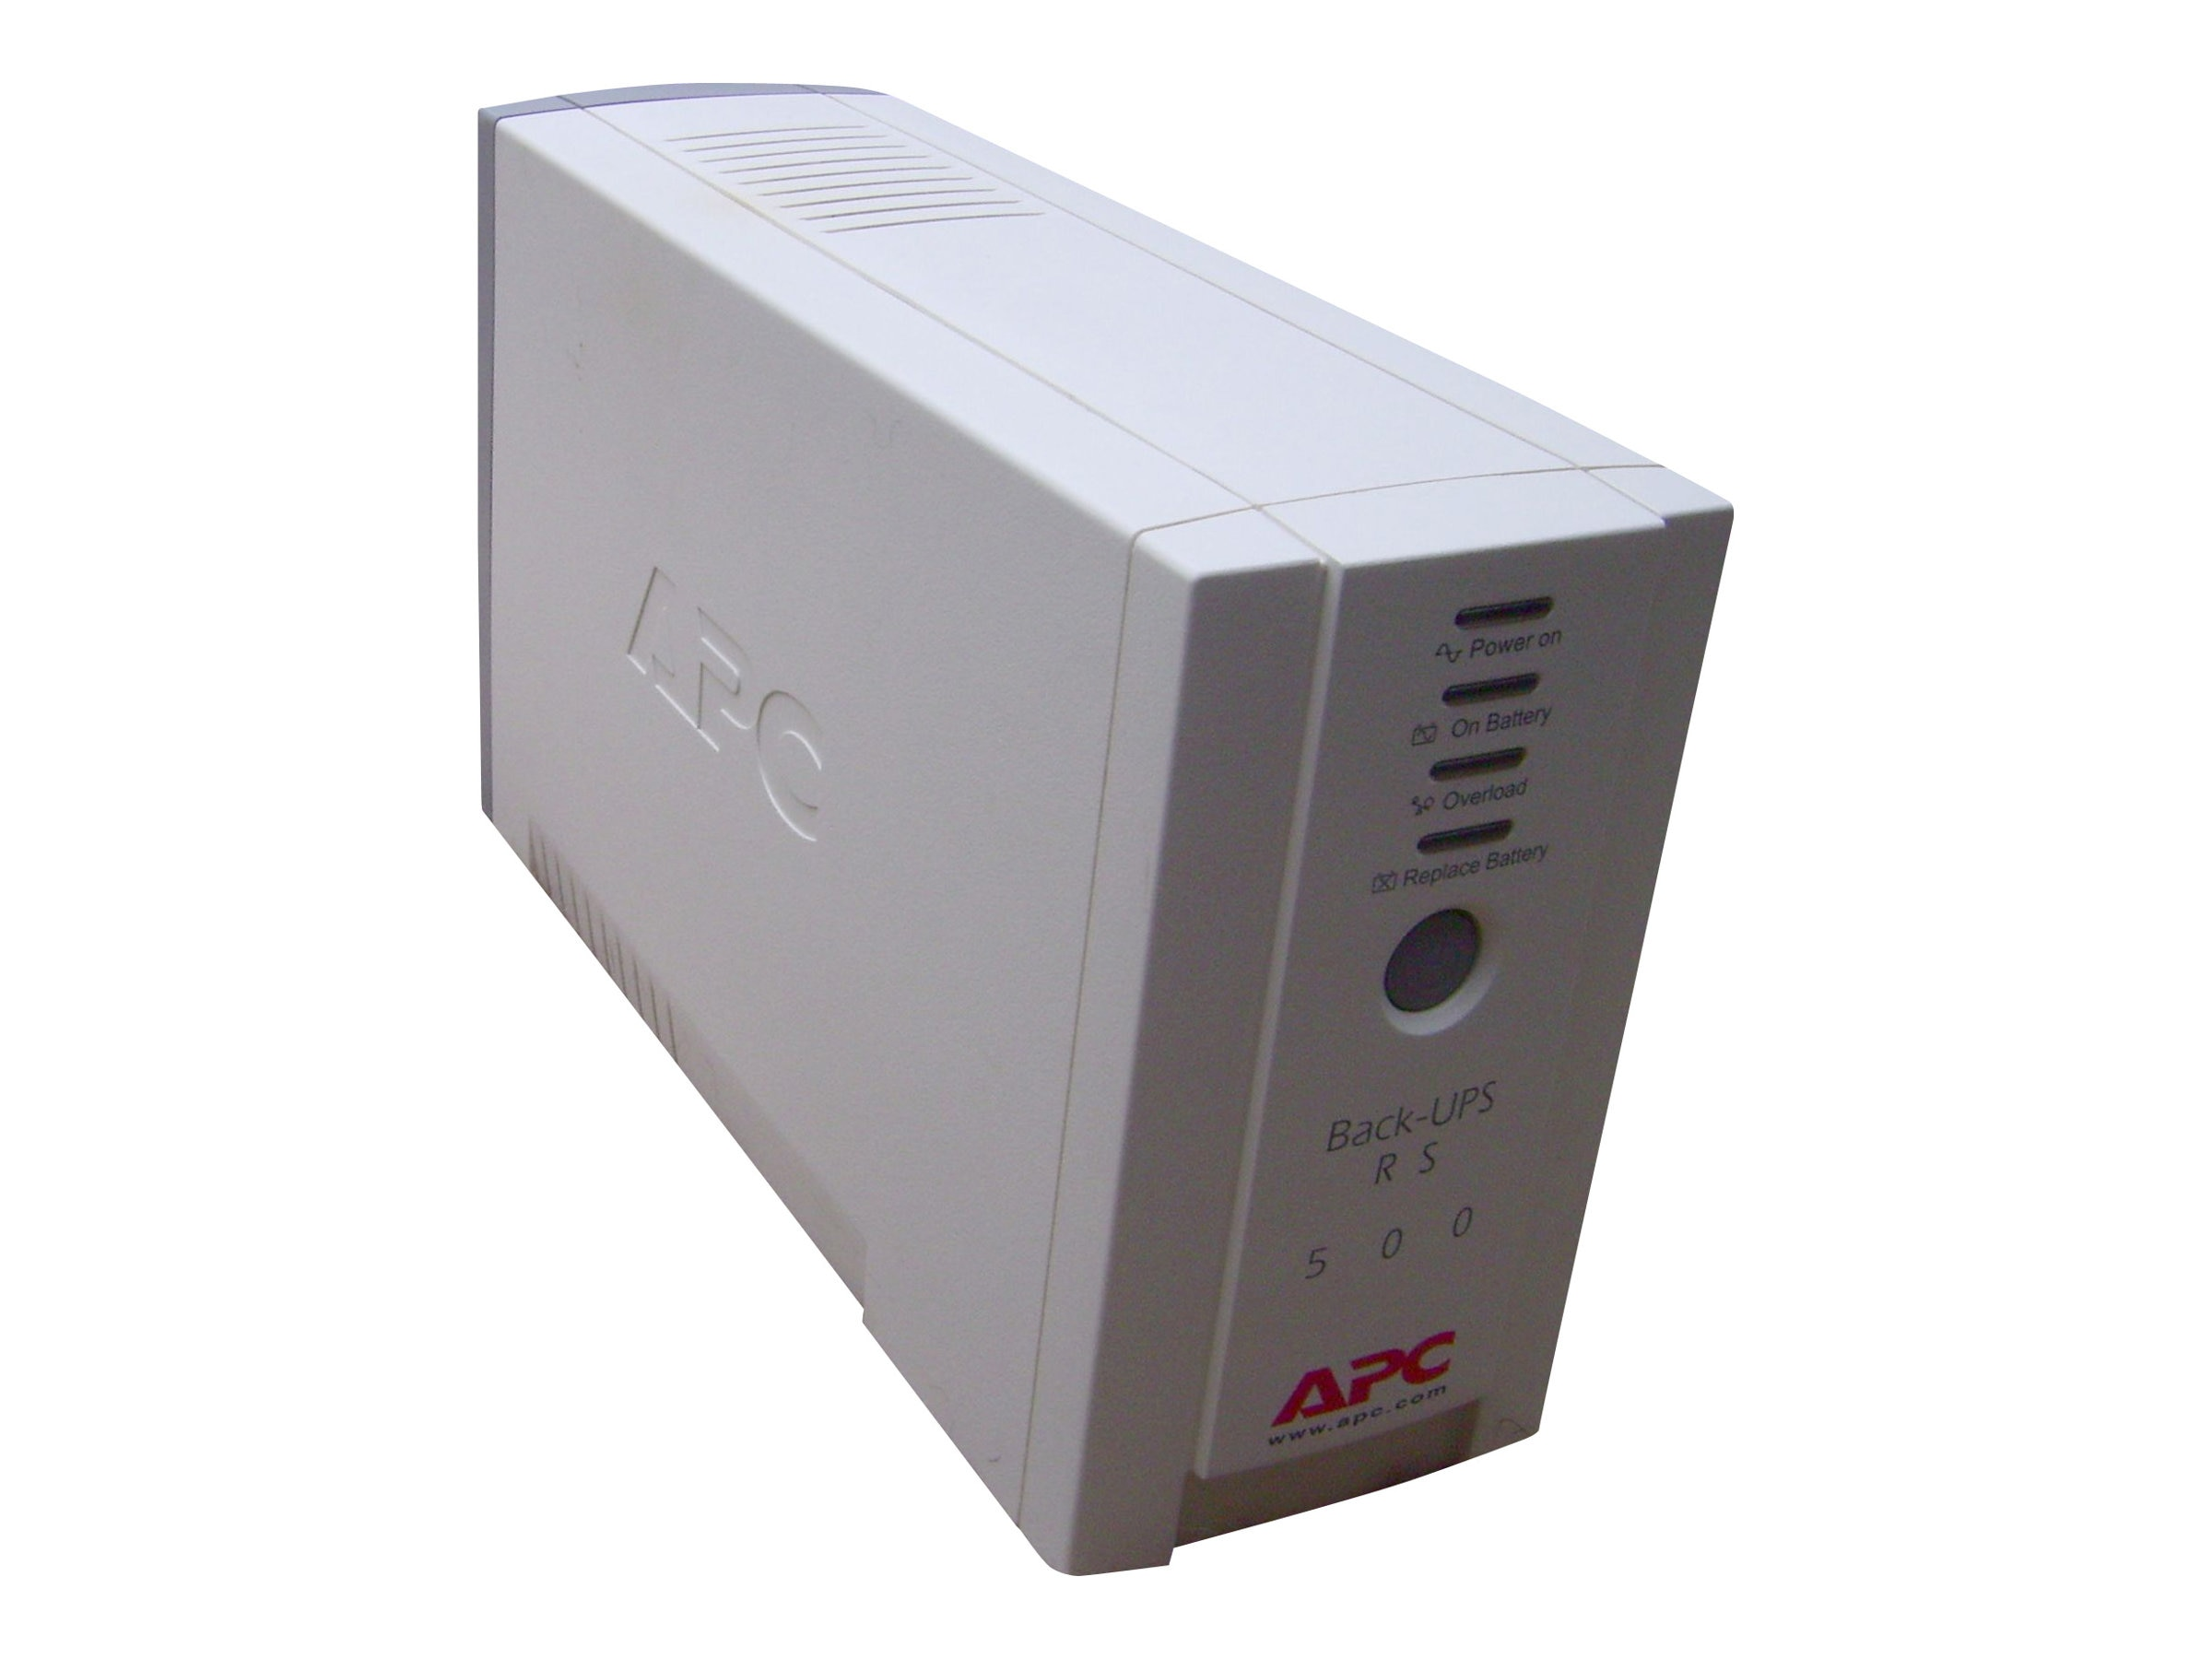 APC Back-UPS CS 500VA 300W Intl 230V UPS (4) C13 Outlets, USB Serial, BK500EI, 246035, Battery Backup/UPS